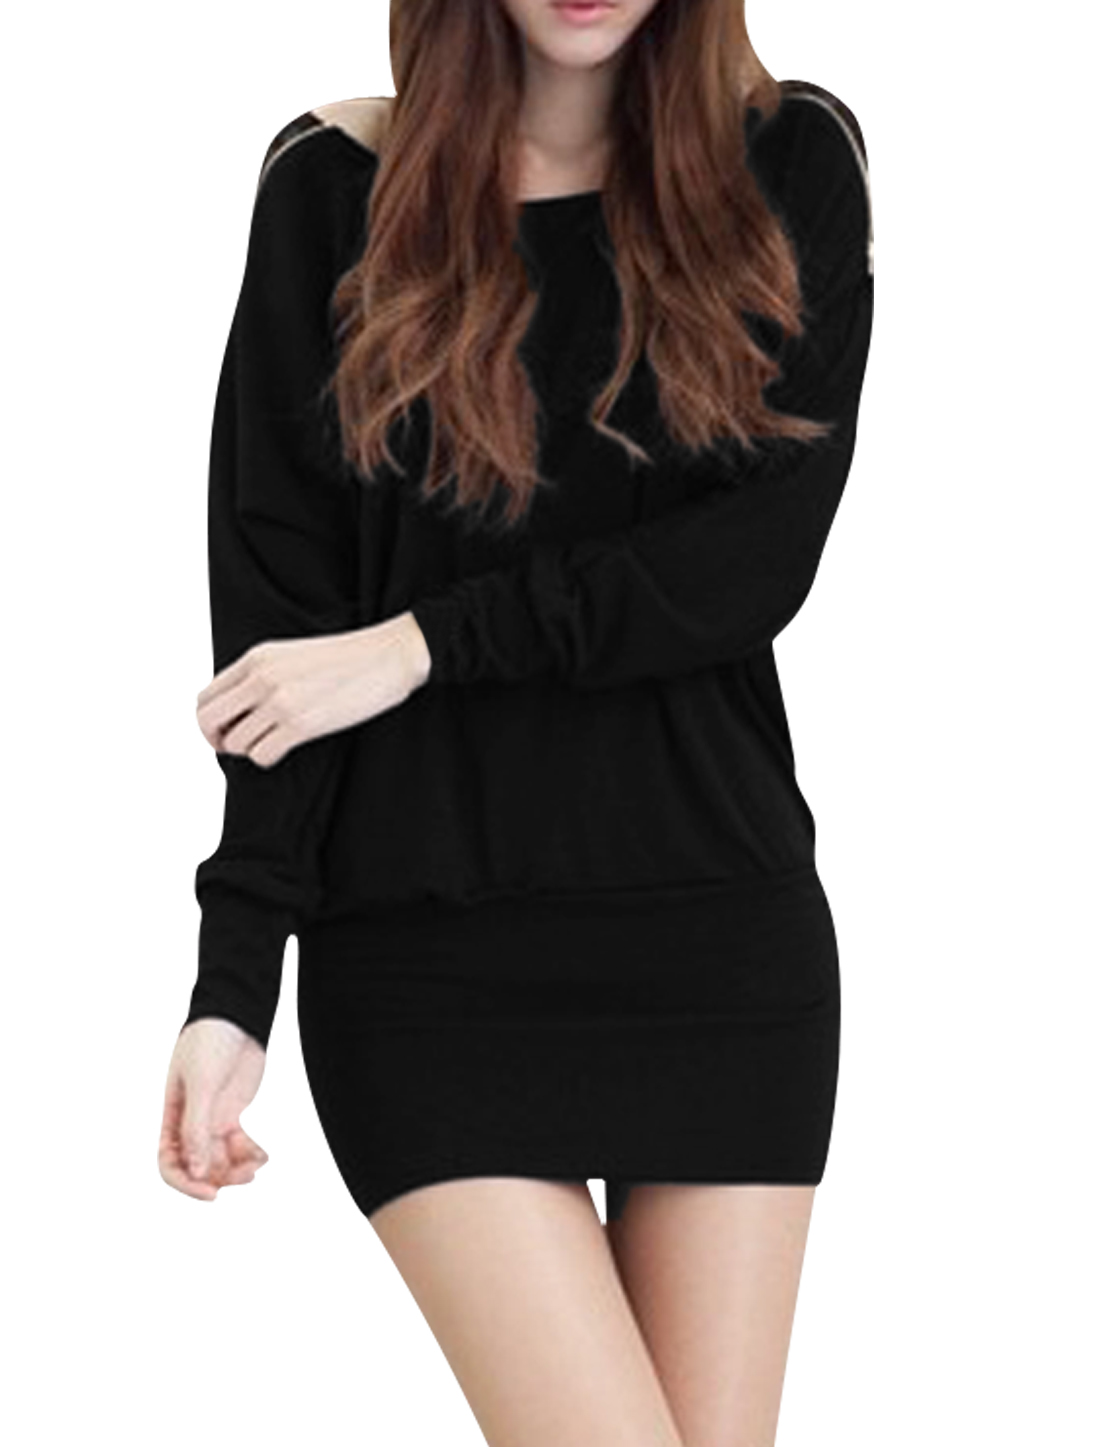 Women Batwing Sleeves Scoop Neck Lace Panel Bodycon Dress Black XS